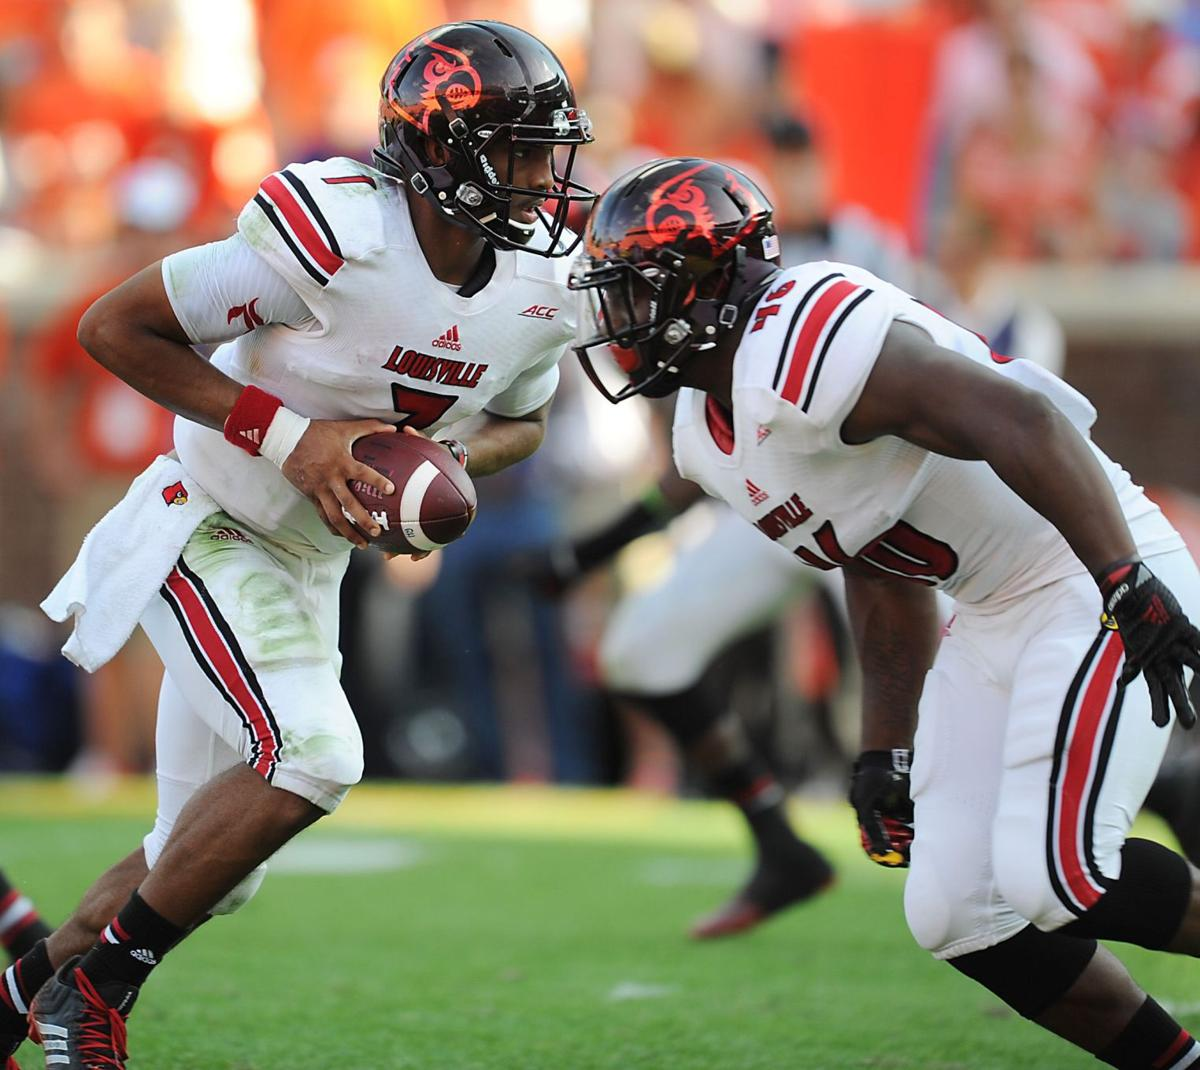 Clemson opponent preview No. 3: Louisville